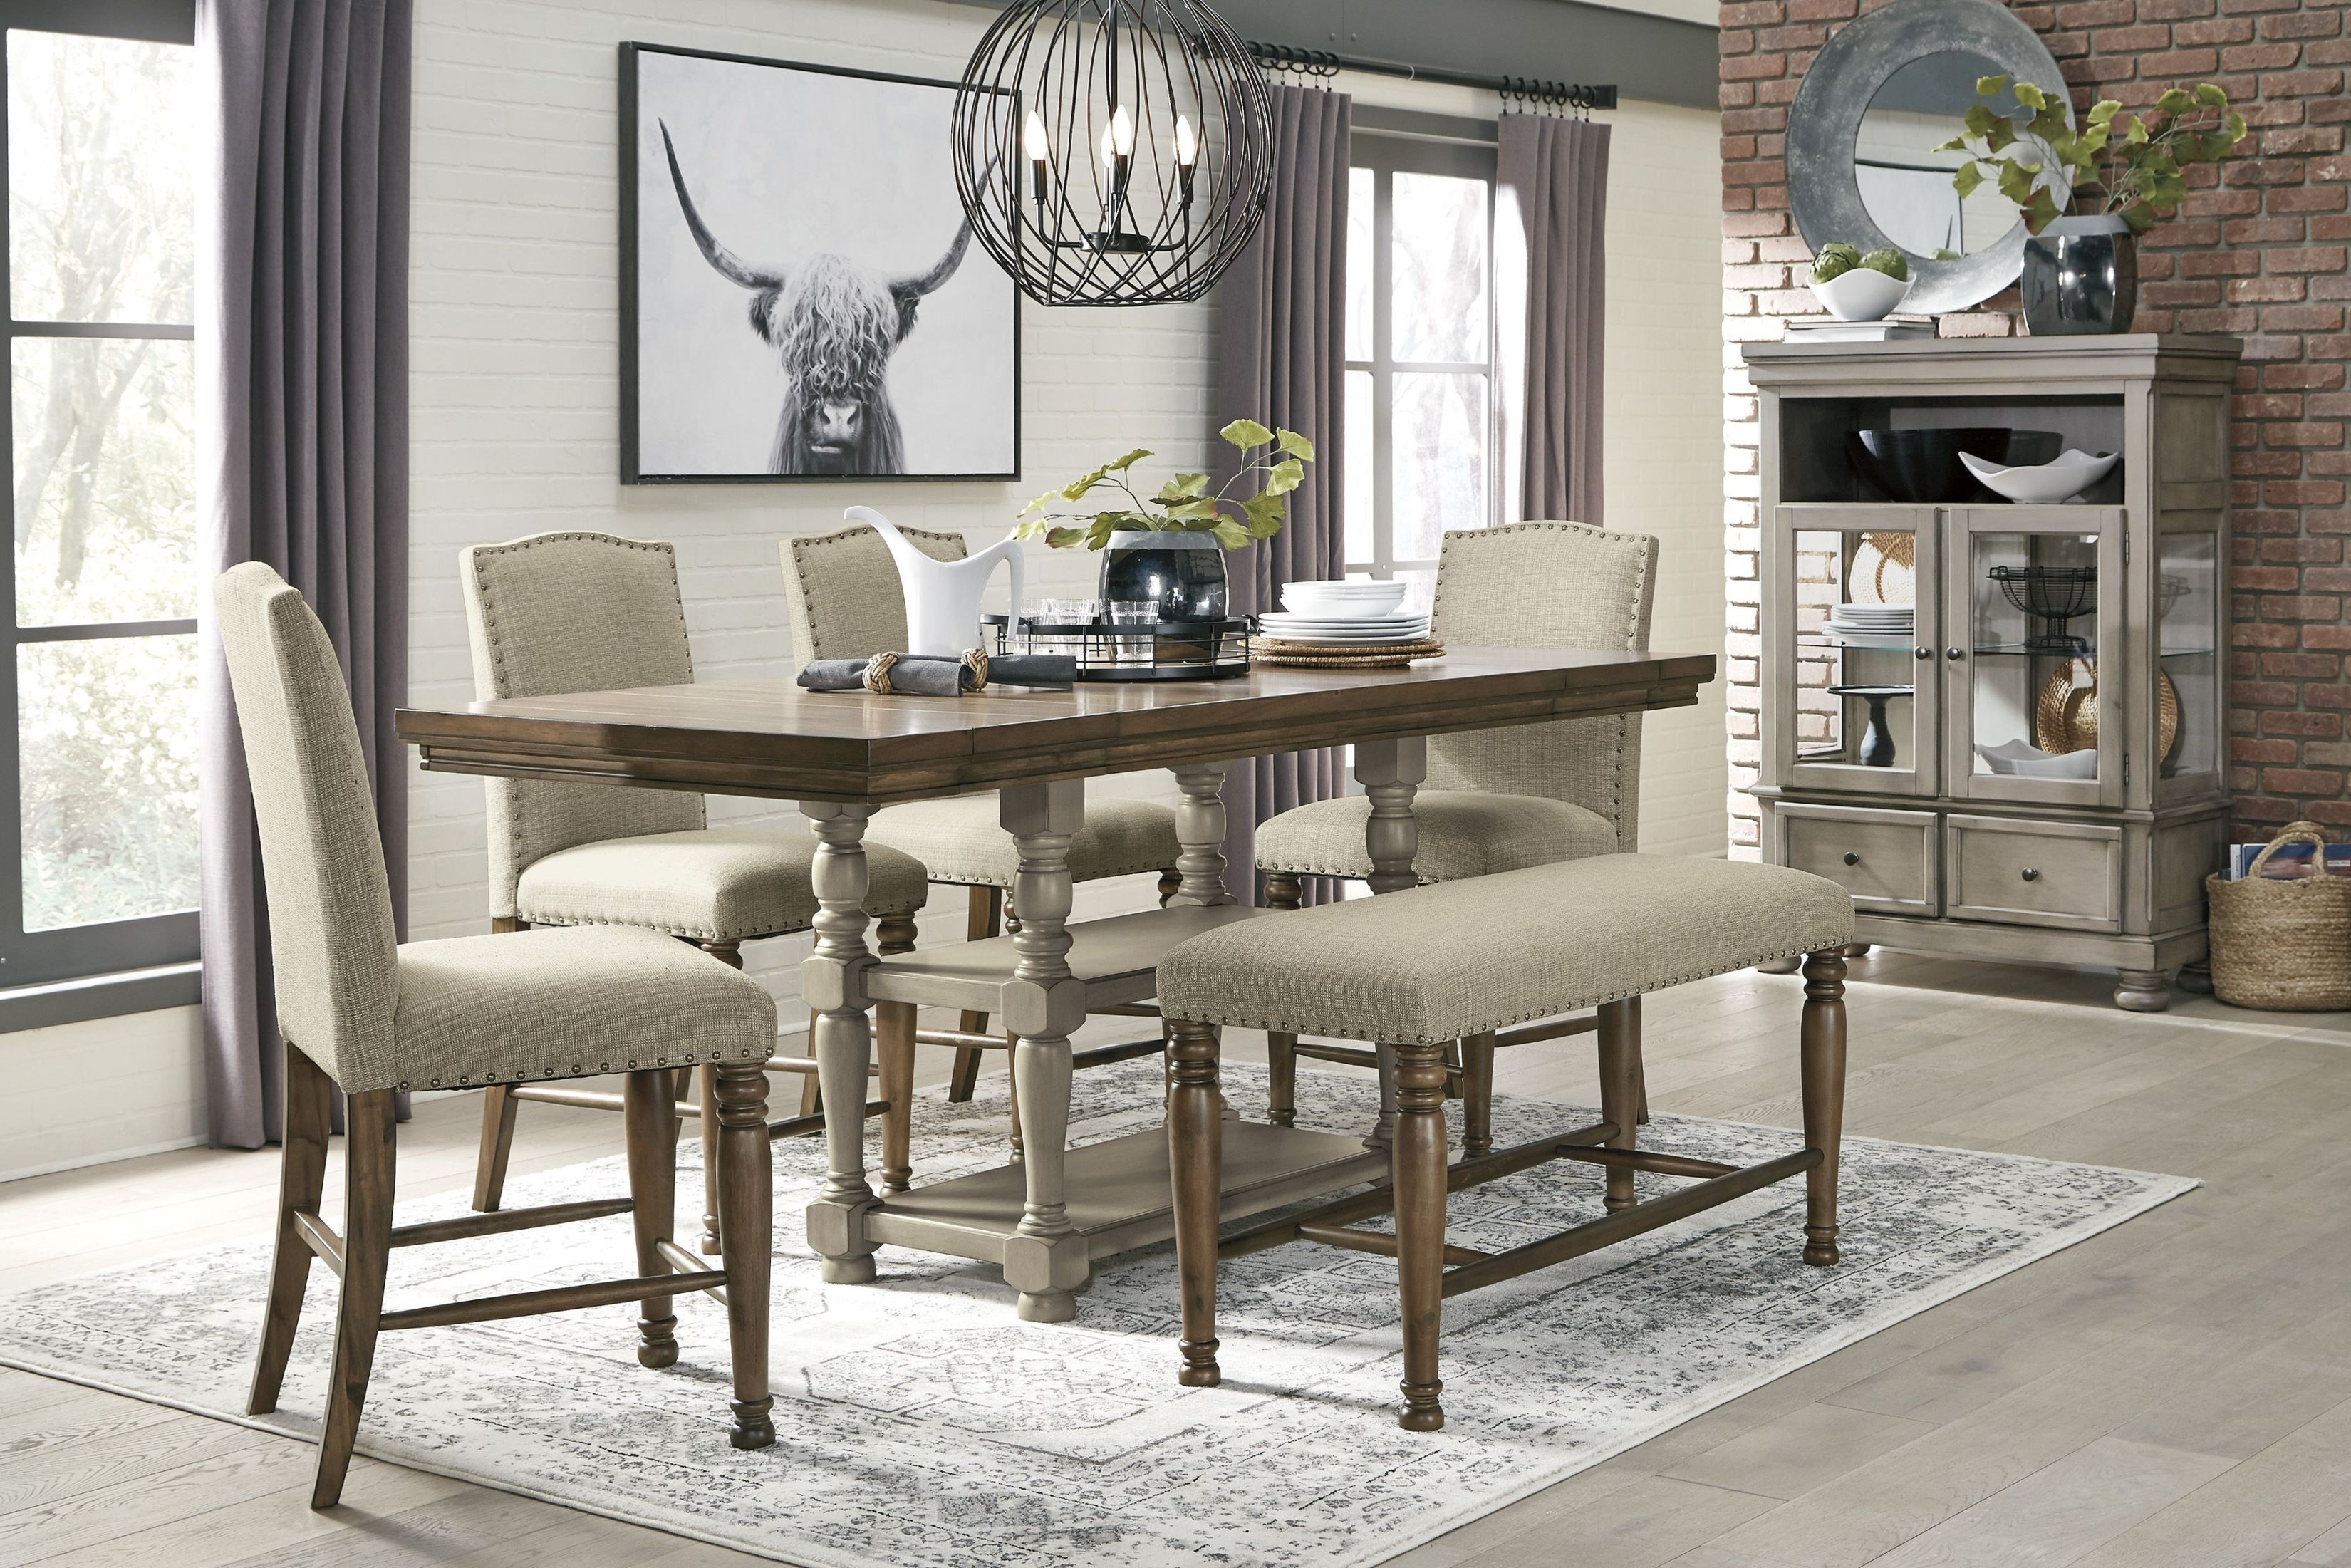 Coaster 5 Pc Lampton Counter Height Dining Table Set 100523 102855 Savvy Discount Furniture